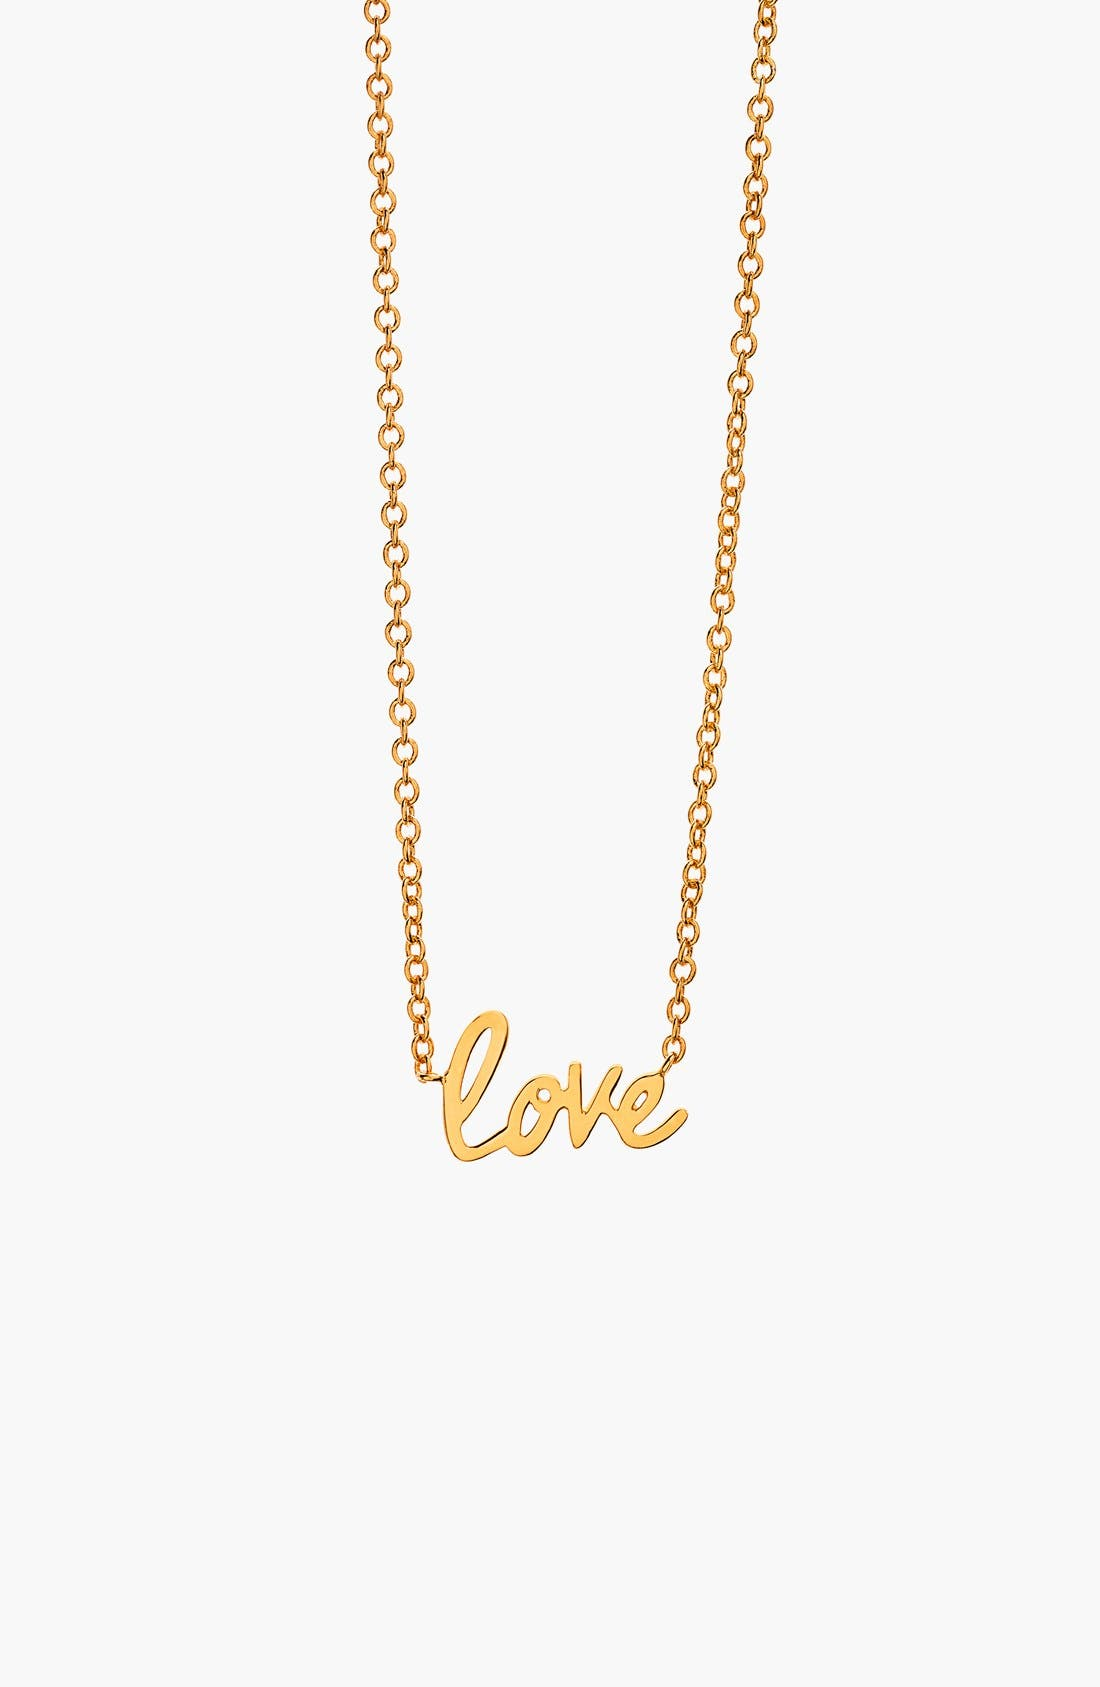 GORJANA 'Love' Pendant Necklace, Main, color, 710